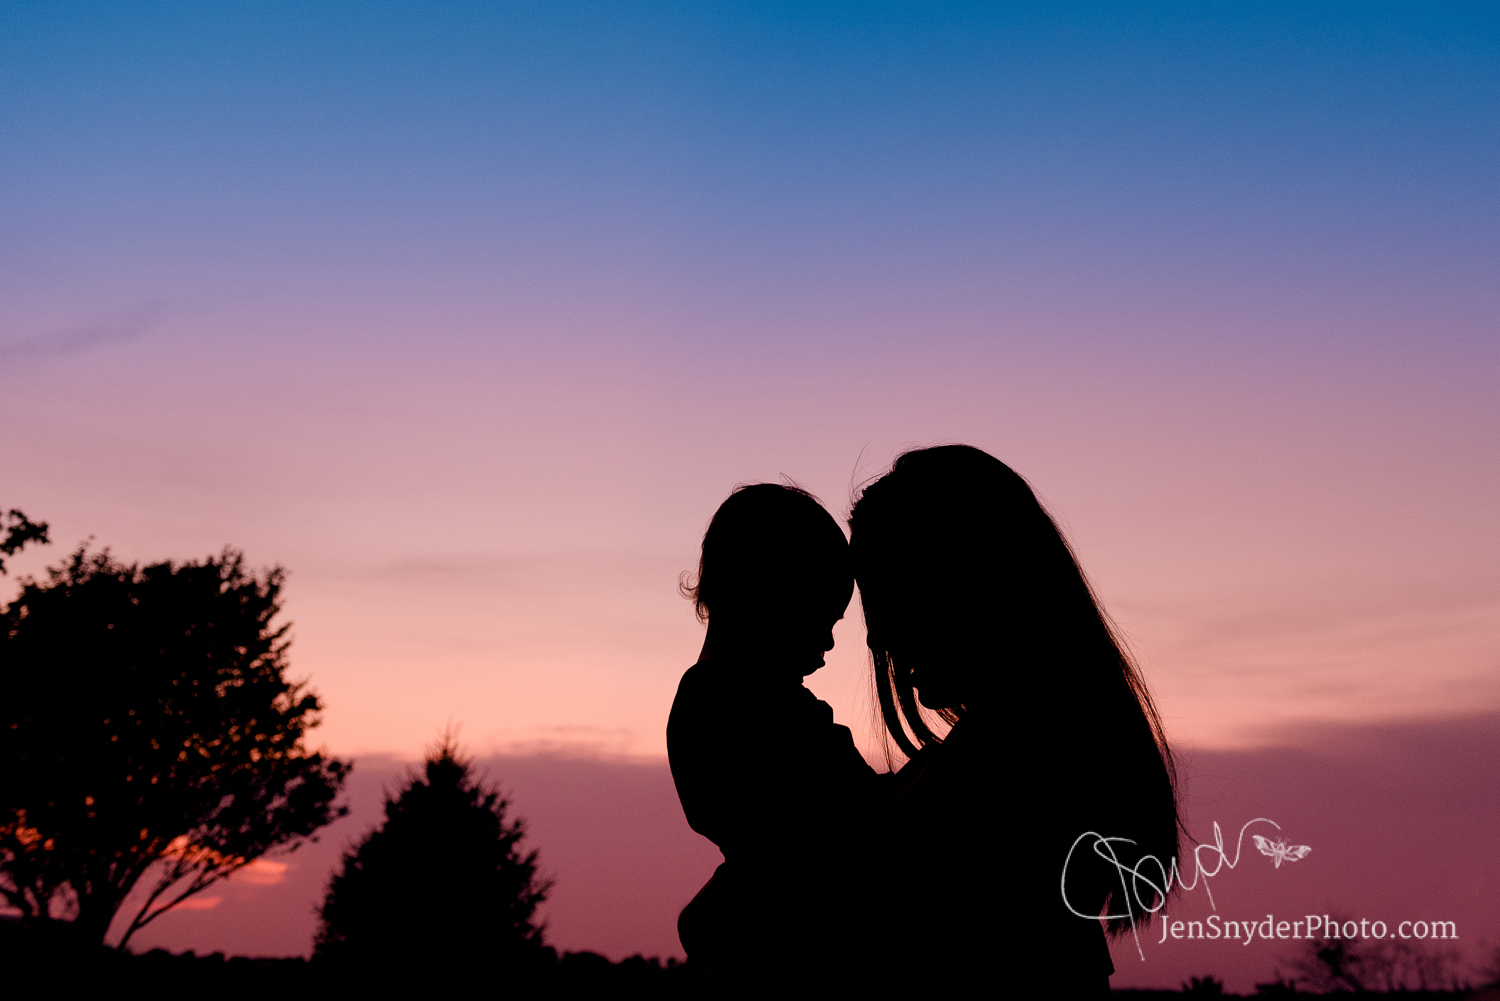 Harford County, Bel Air, MD sunset silhouette family photographer Jen Snyder http://www.jensnyderphoto.com